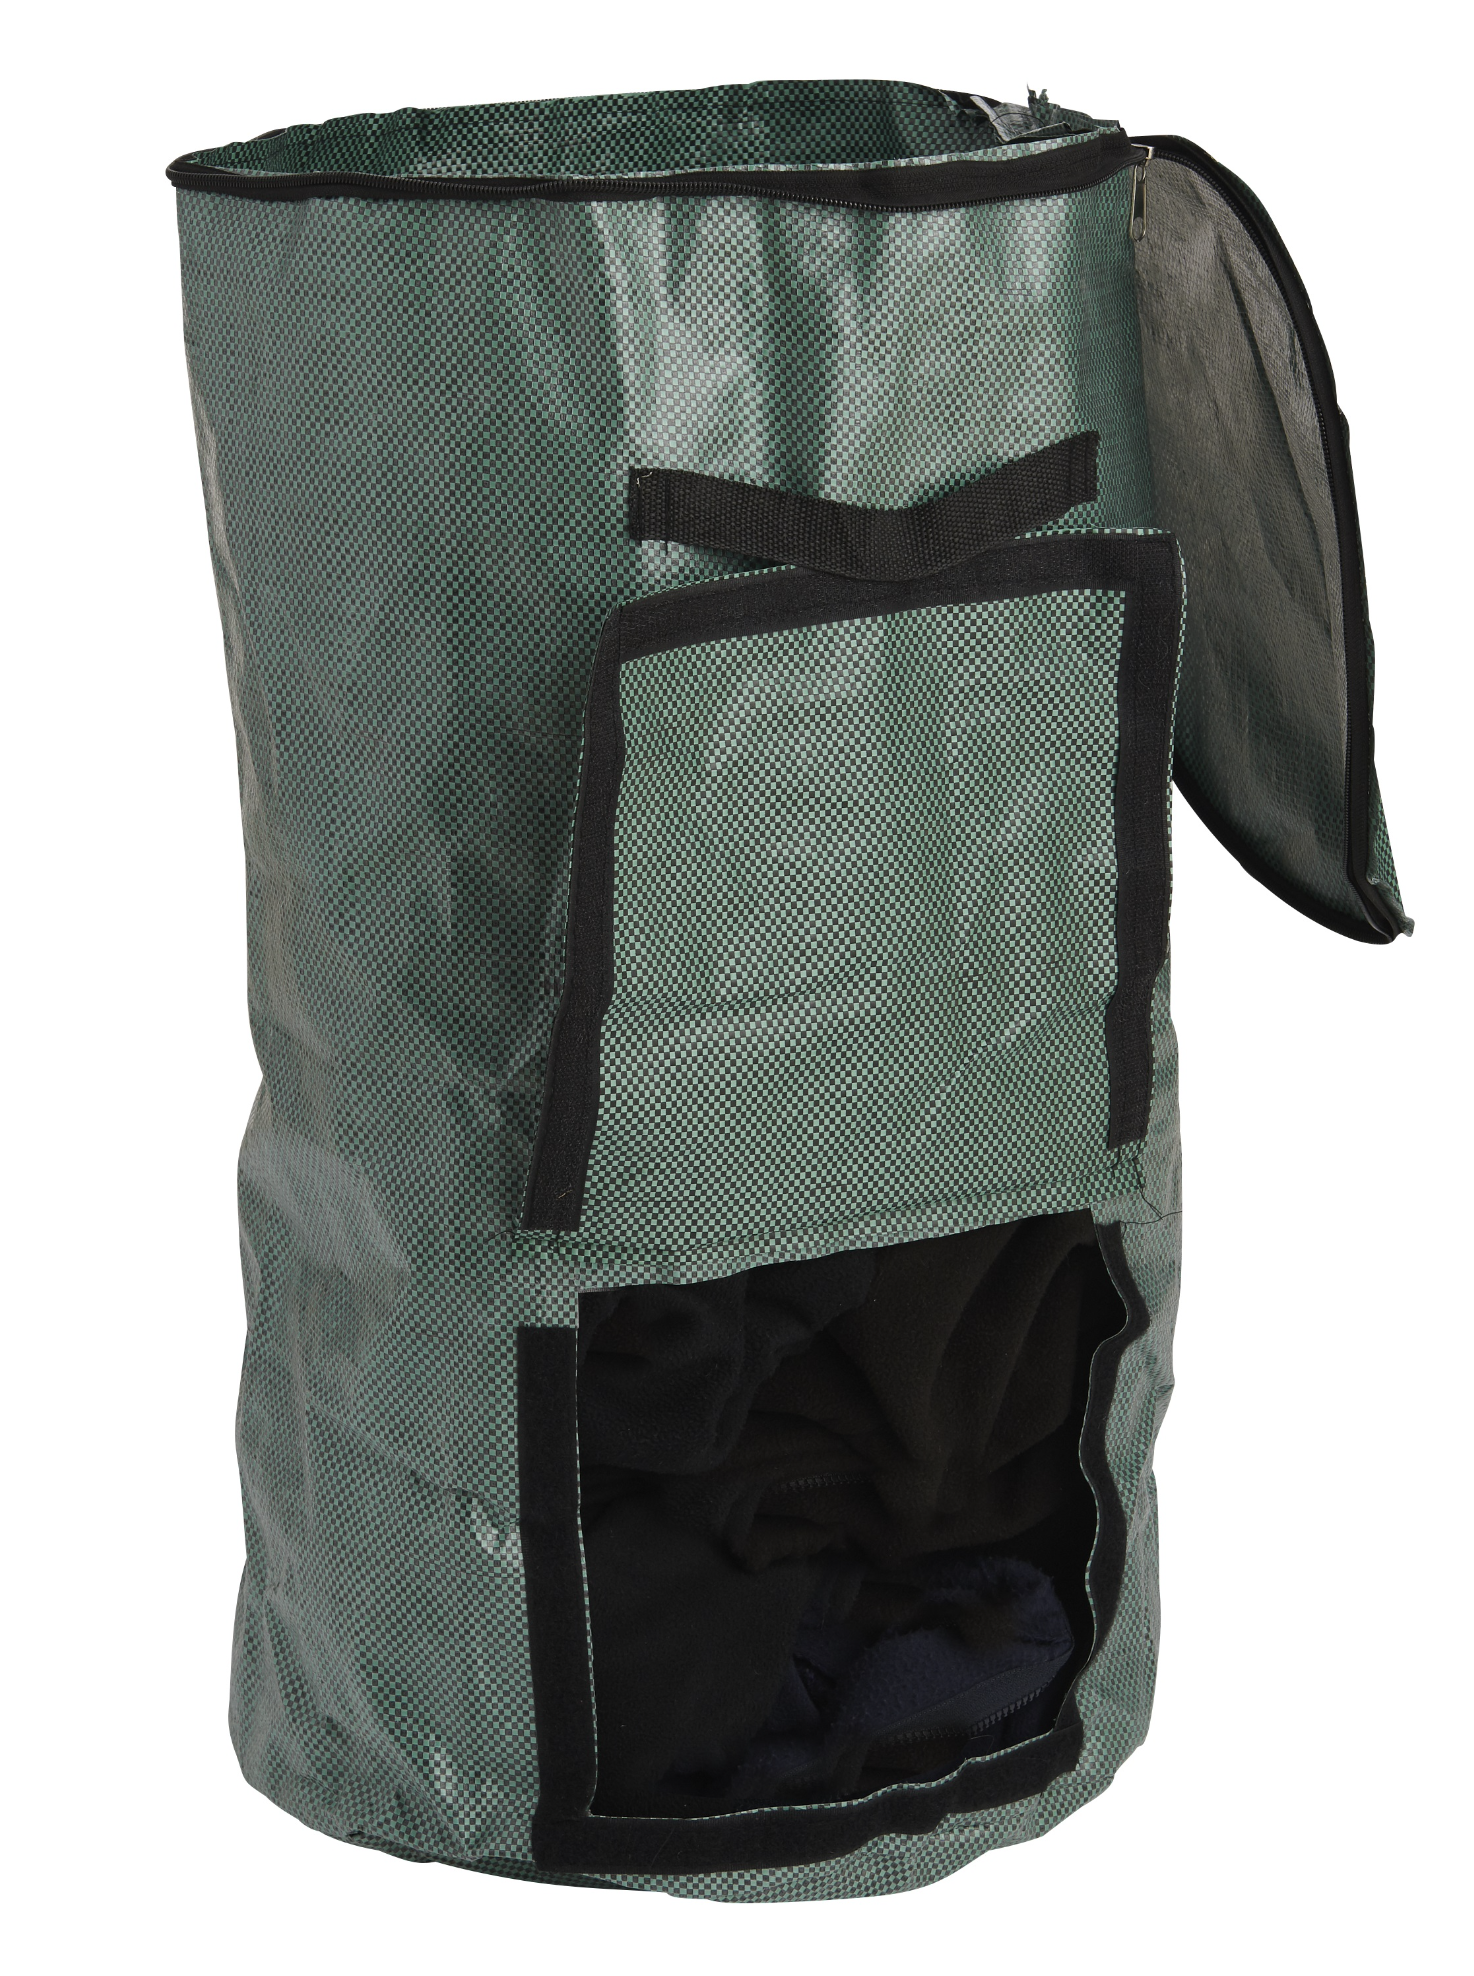 Collapsible and moveable compost bag from Wilko